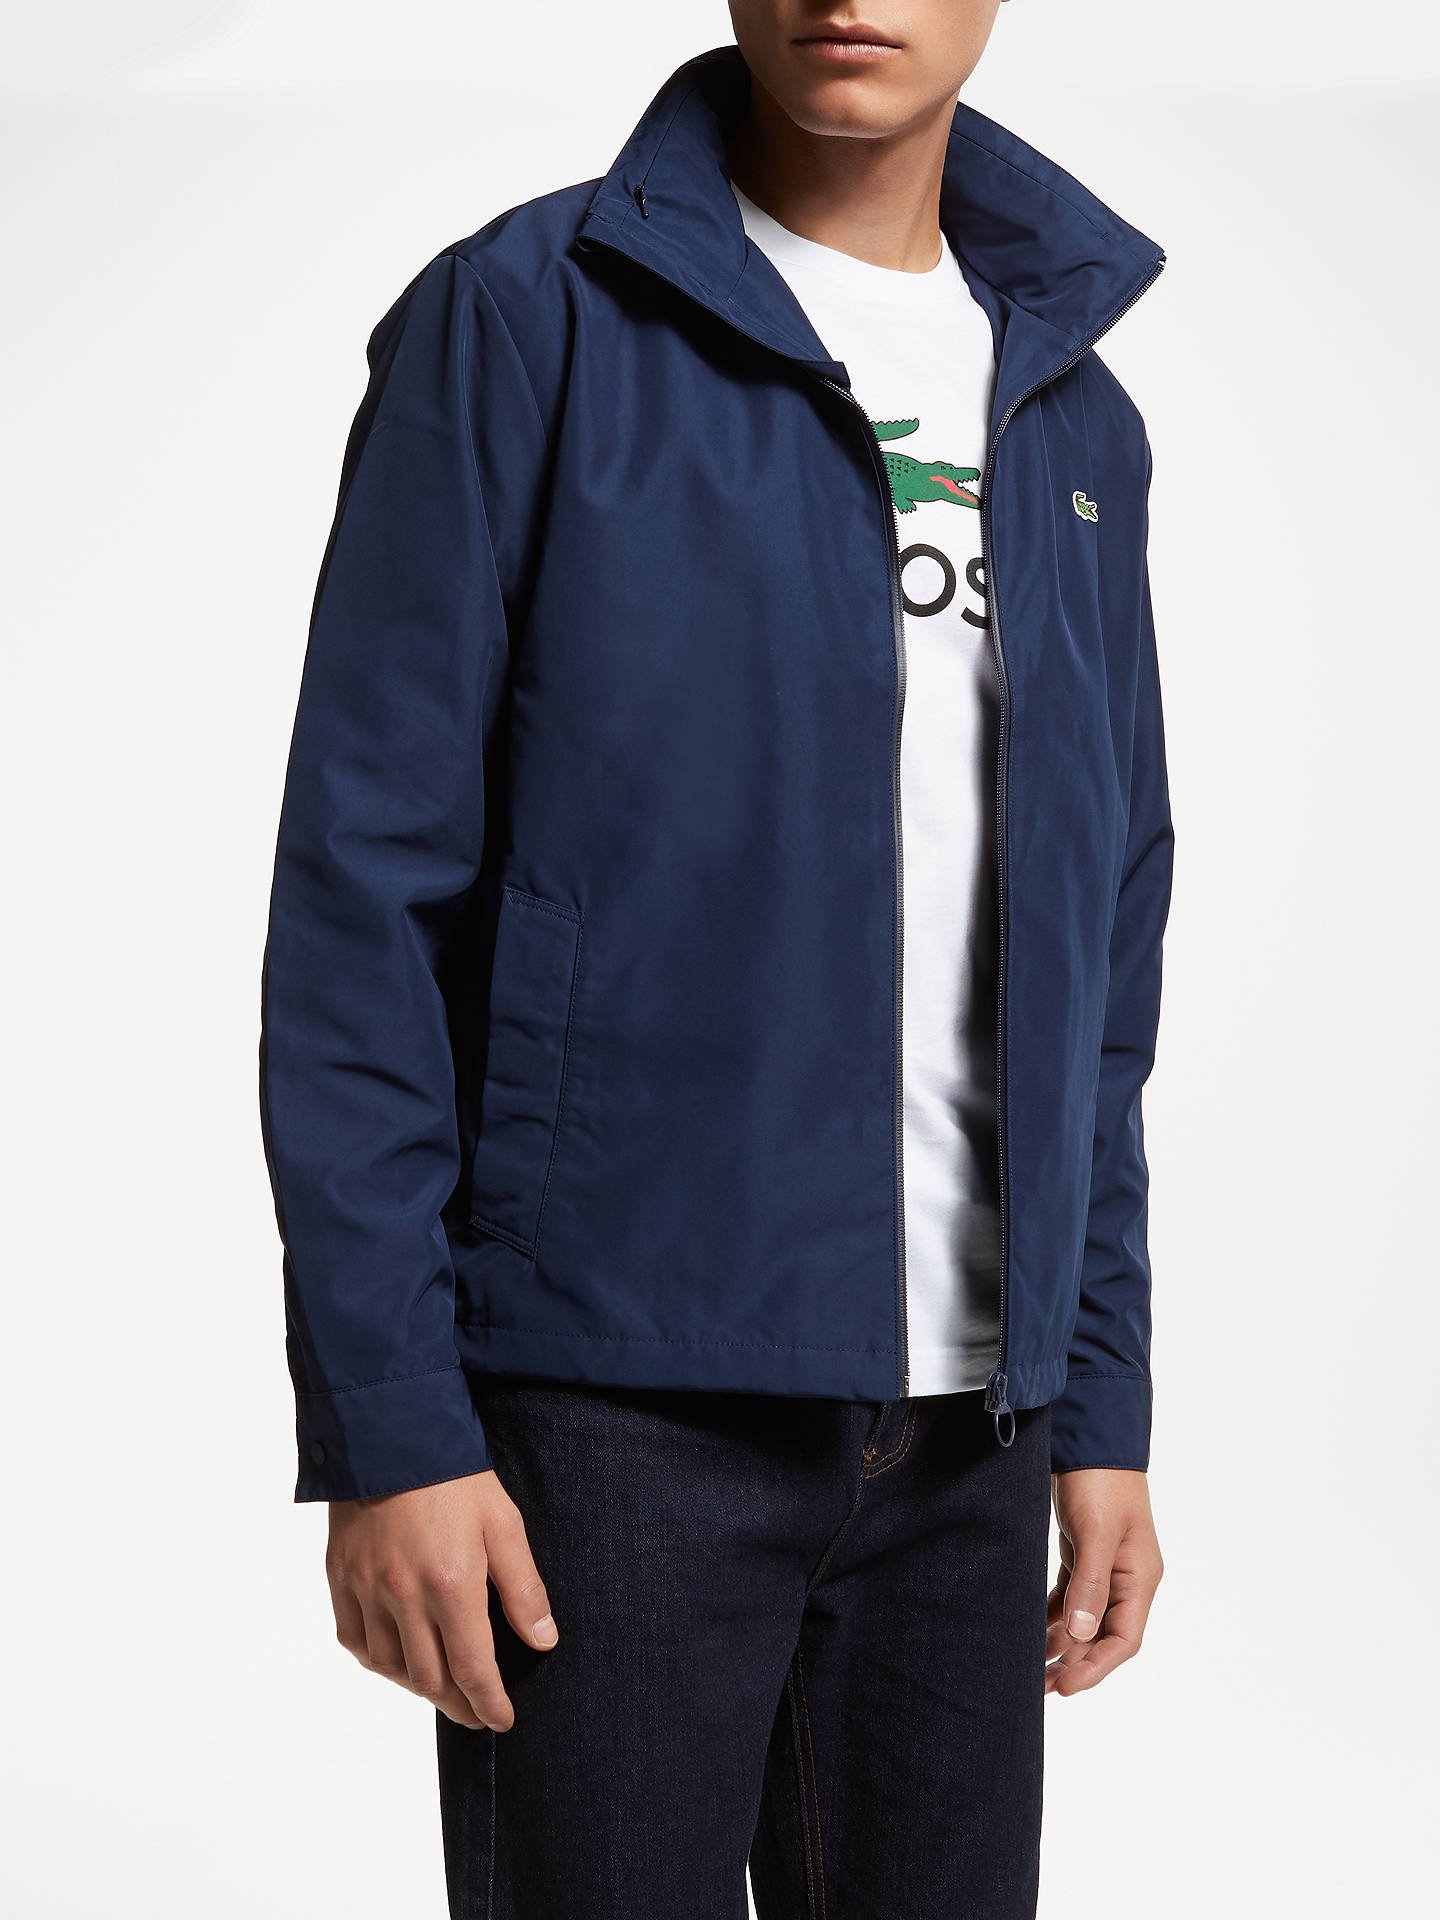 0104ae61 Lacoste Long Sleeve Jacket, Navy at John Lewis & Partners